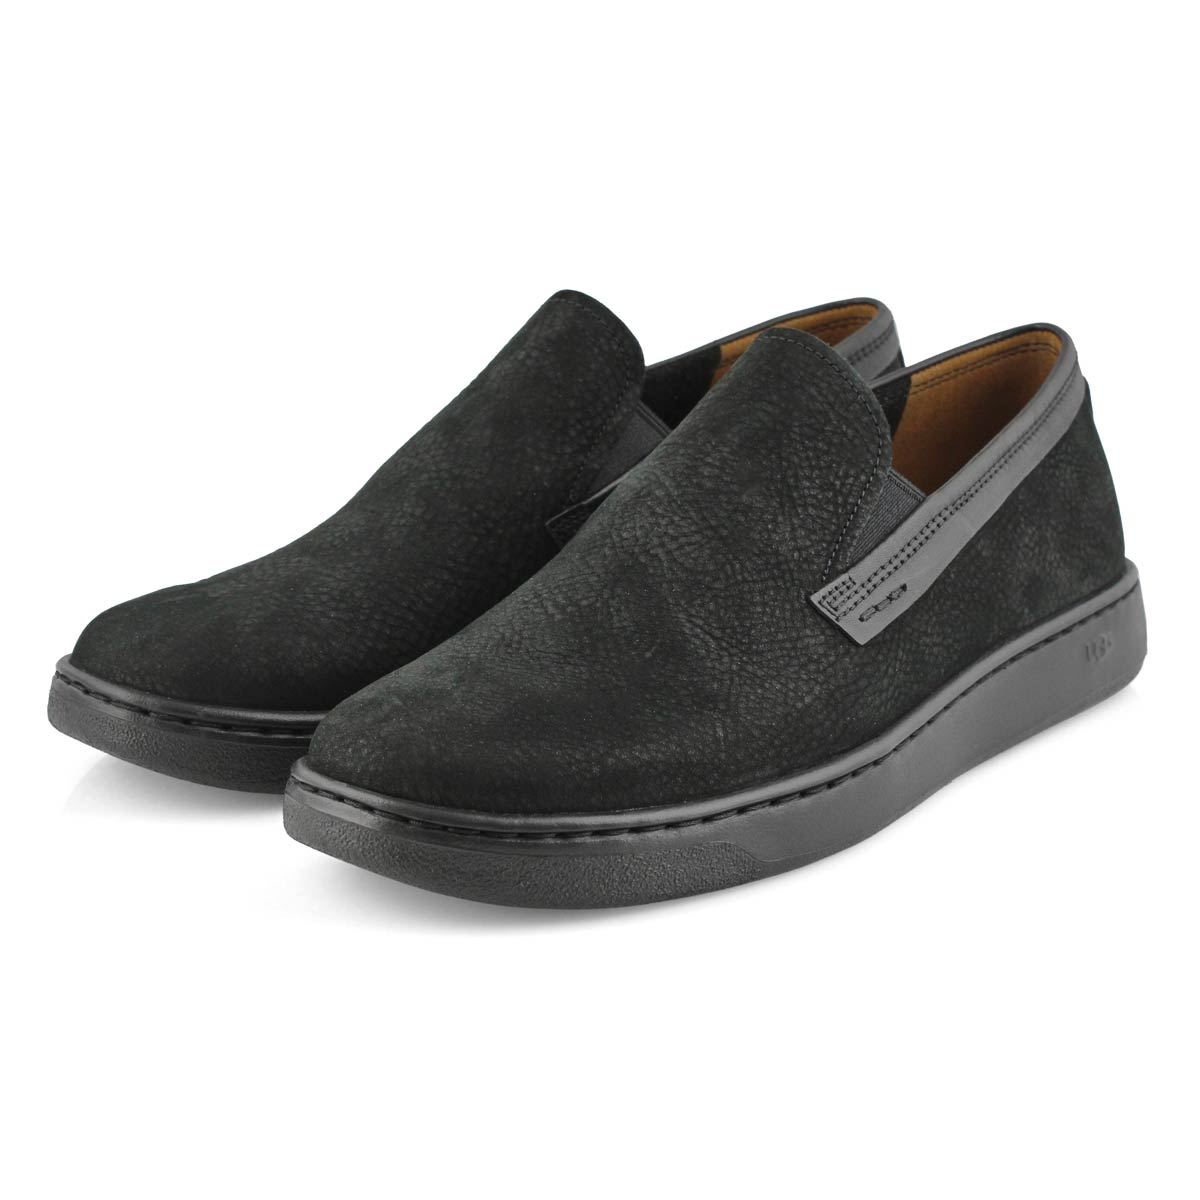 Mns Pismo black slip on sneaker